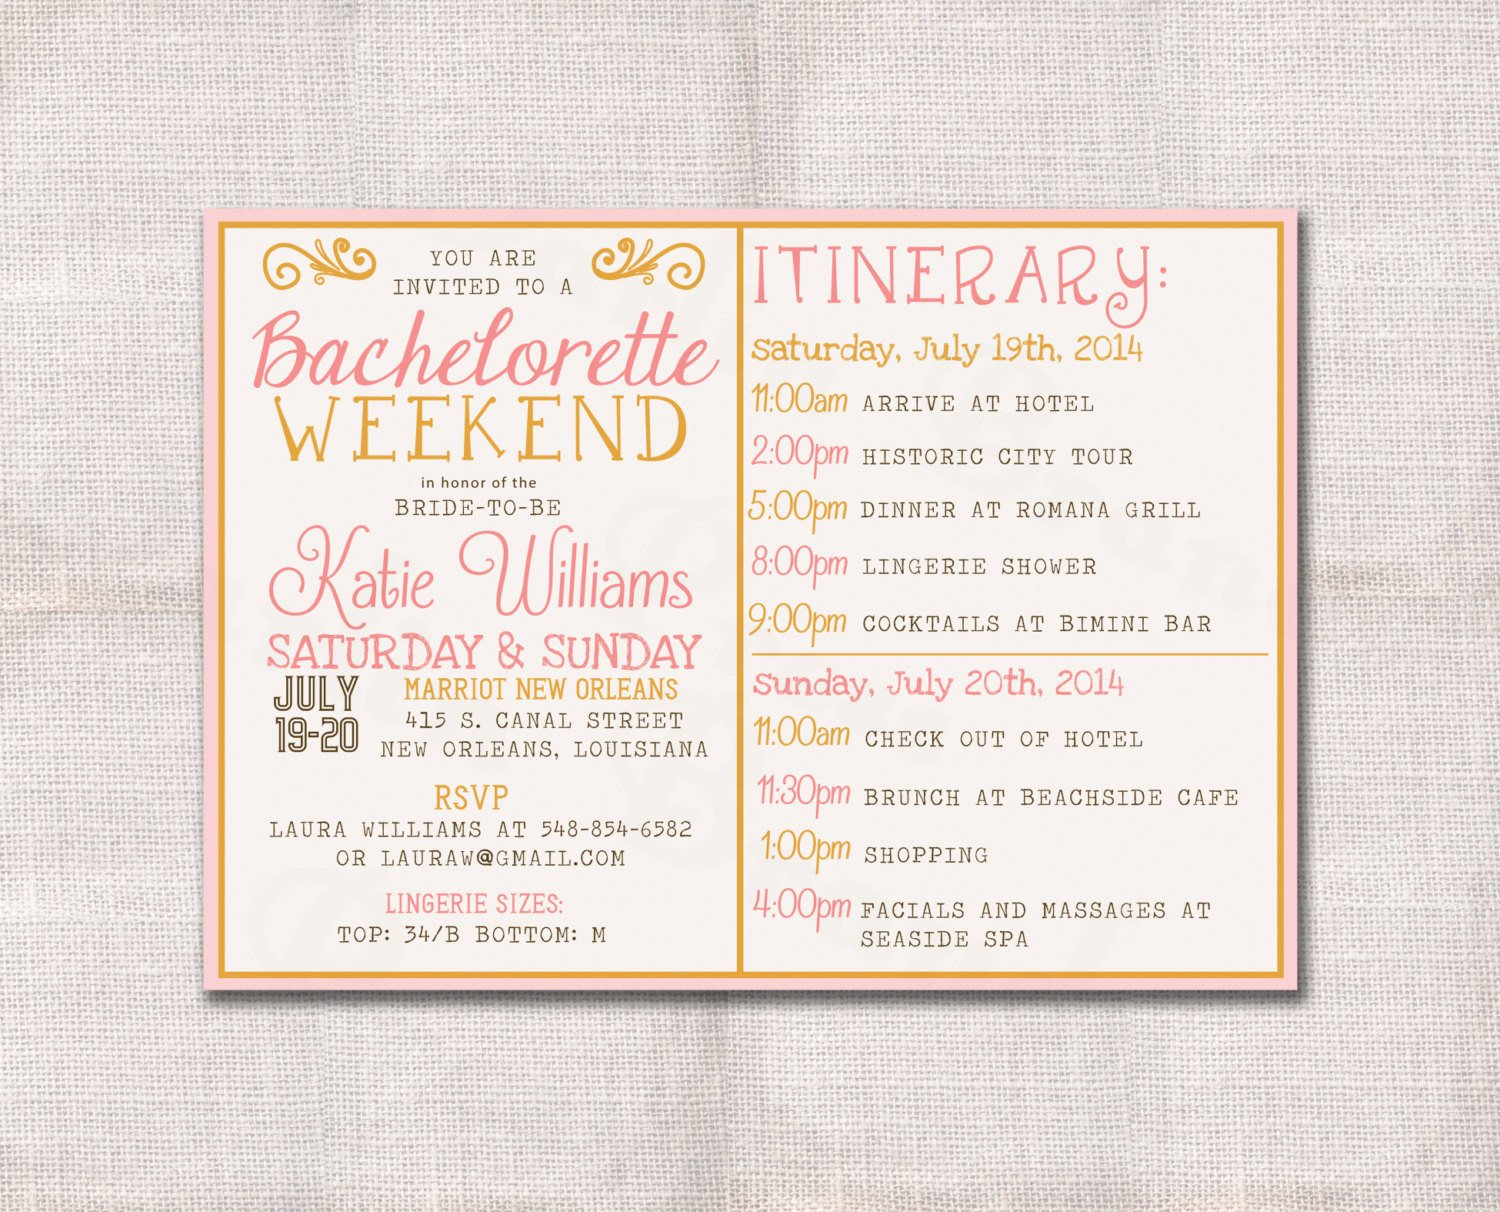 Bachelorette Party Invitations Template Free Bachelorette Party Weekend Invitation and Itinerary Custom